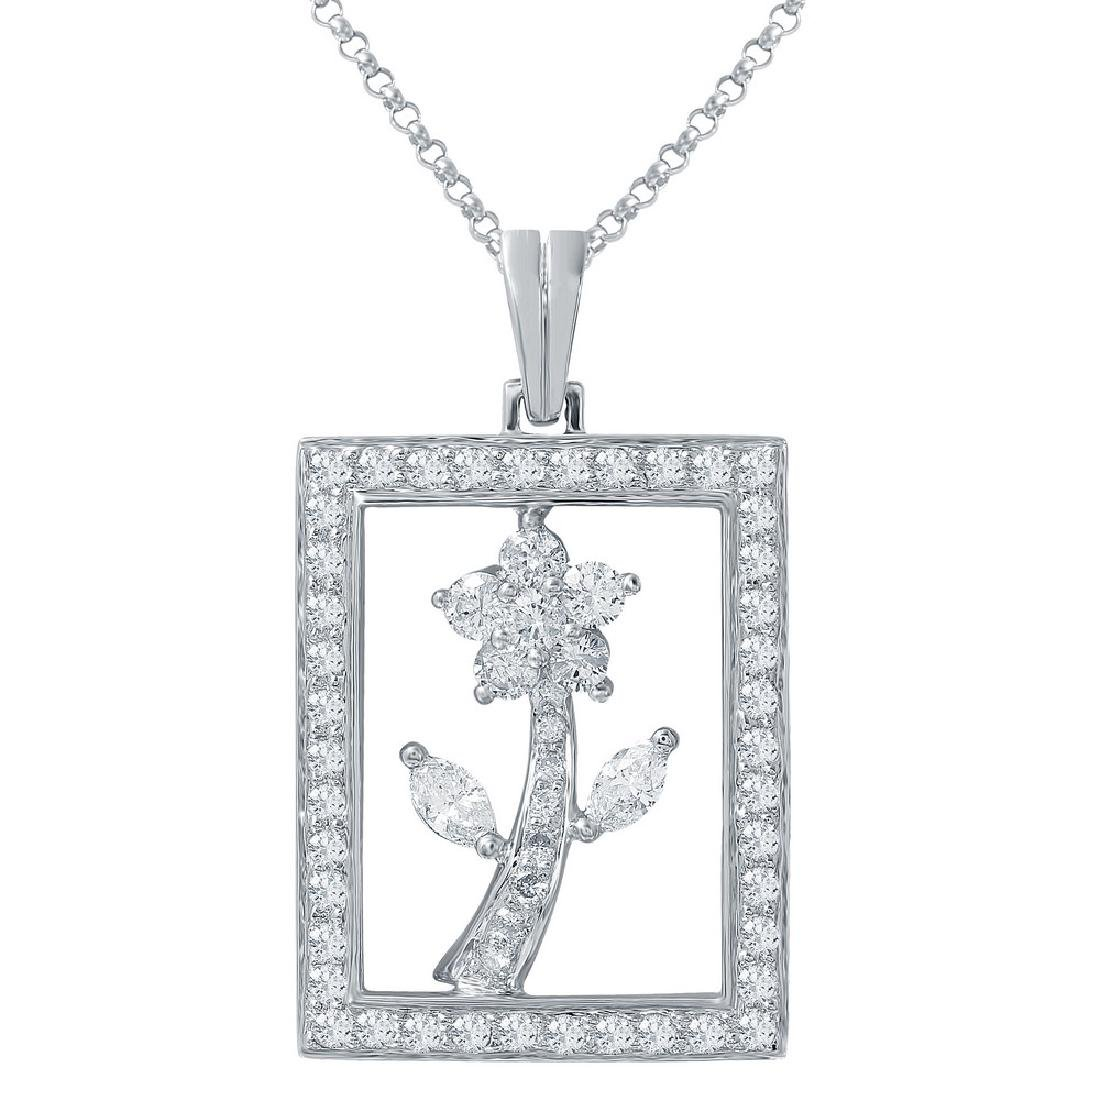 Genuine 1.49 TCW 18K White Gold Ladies Pendant